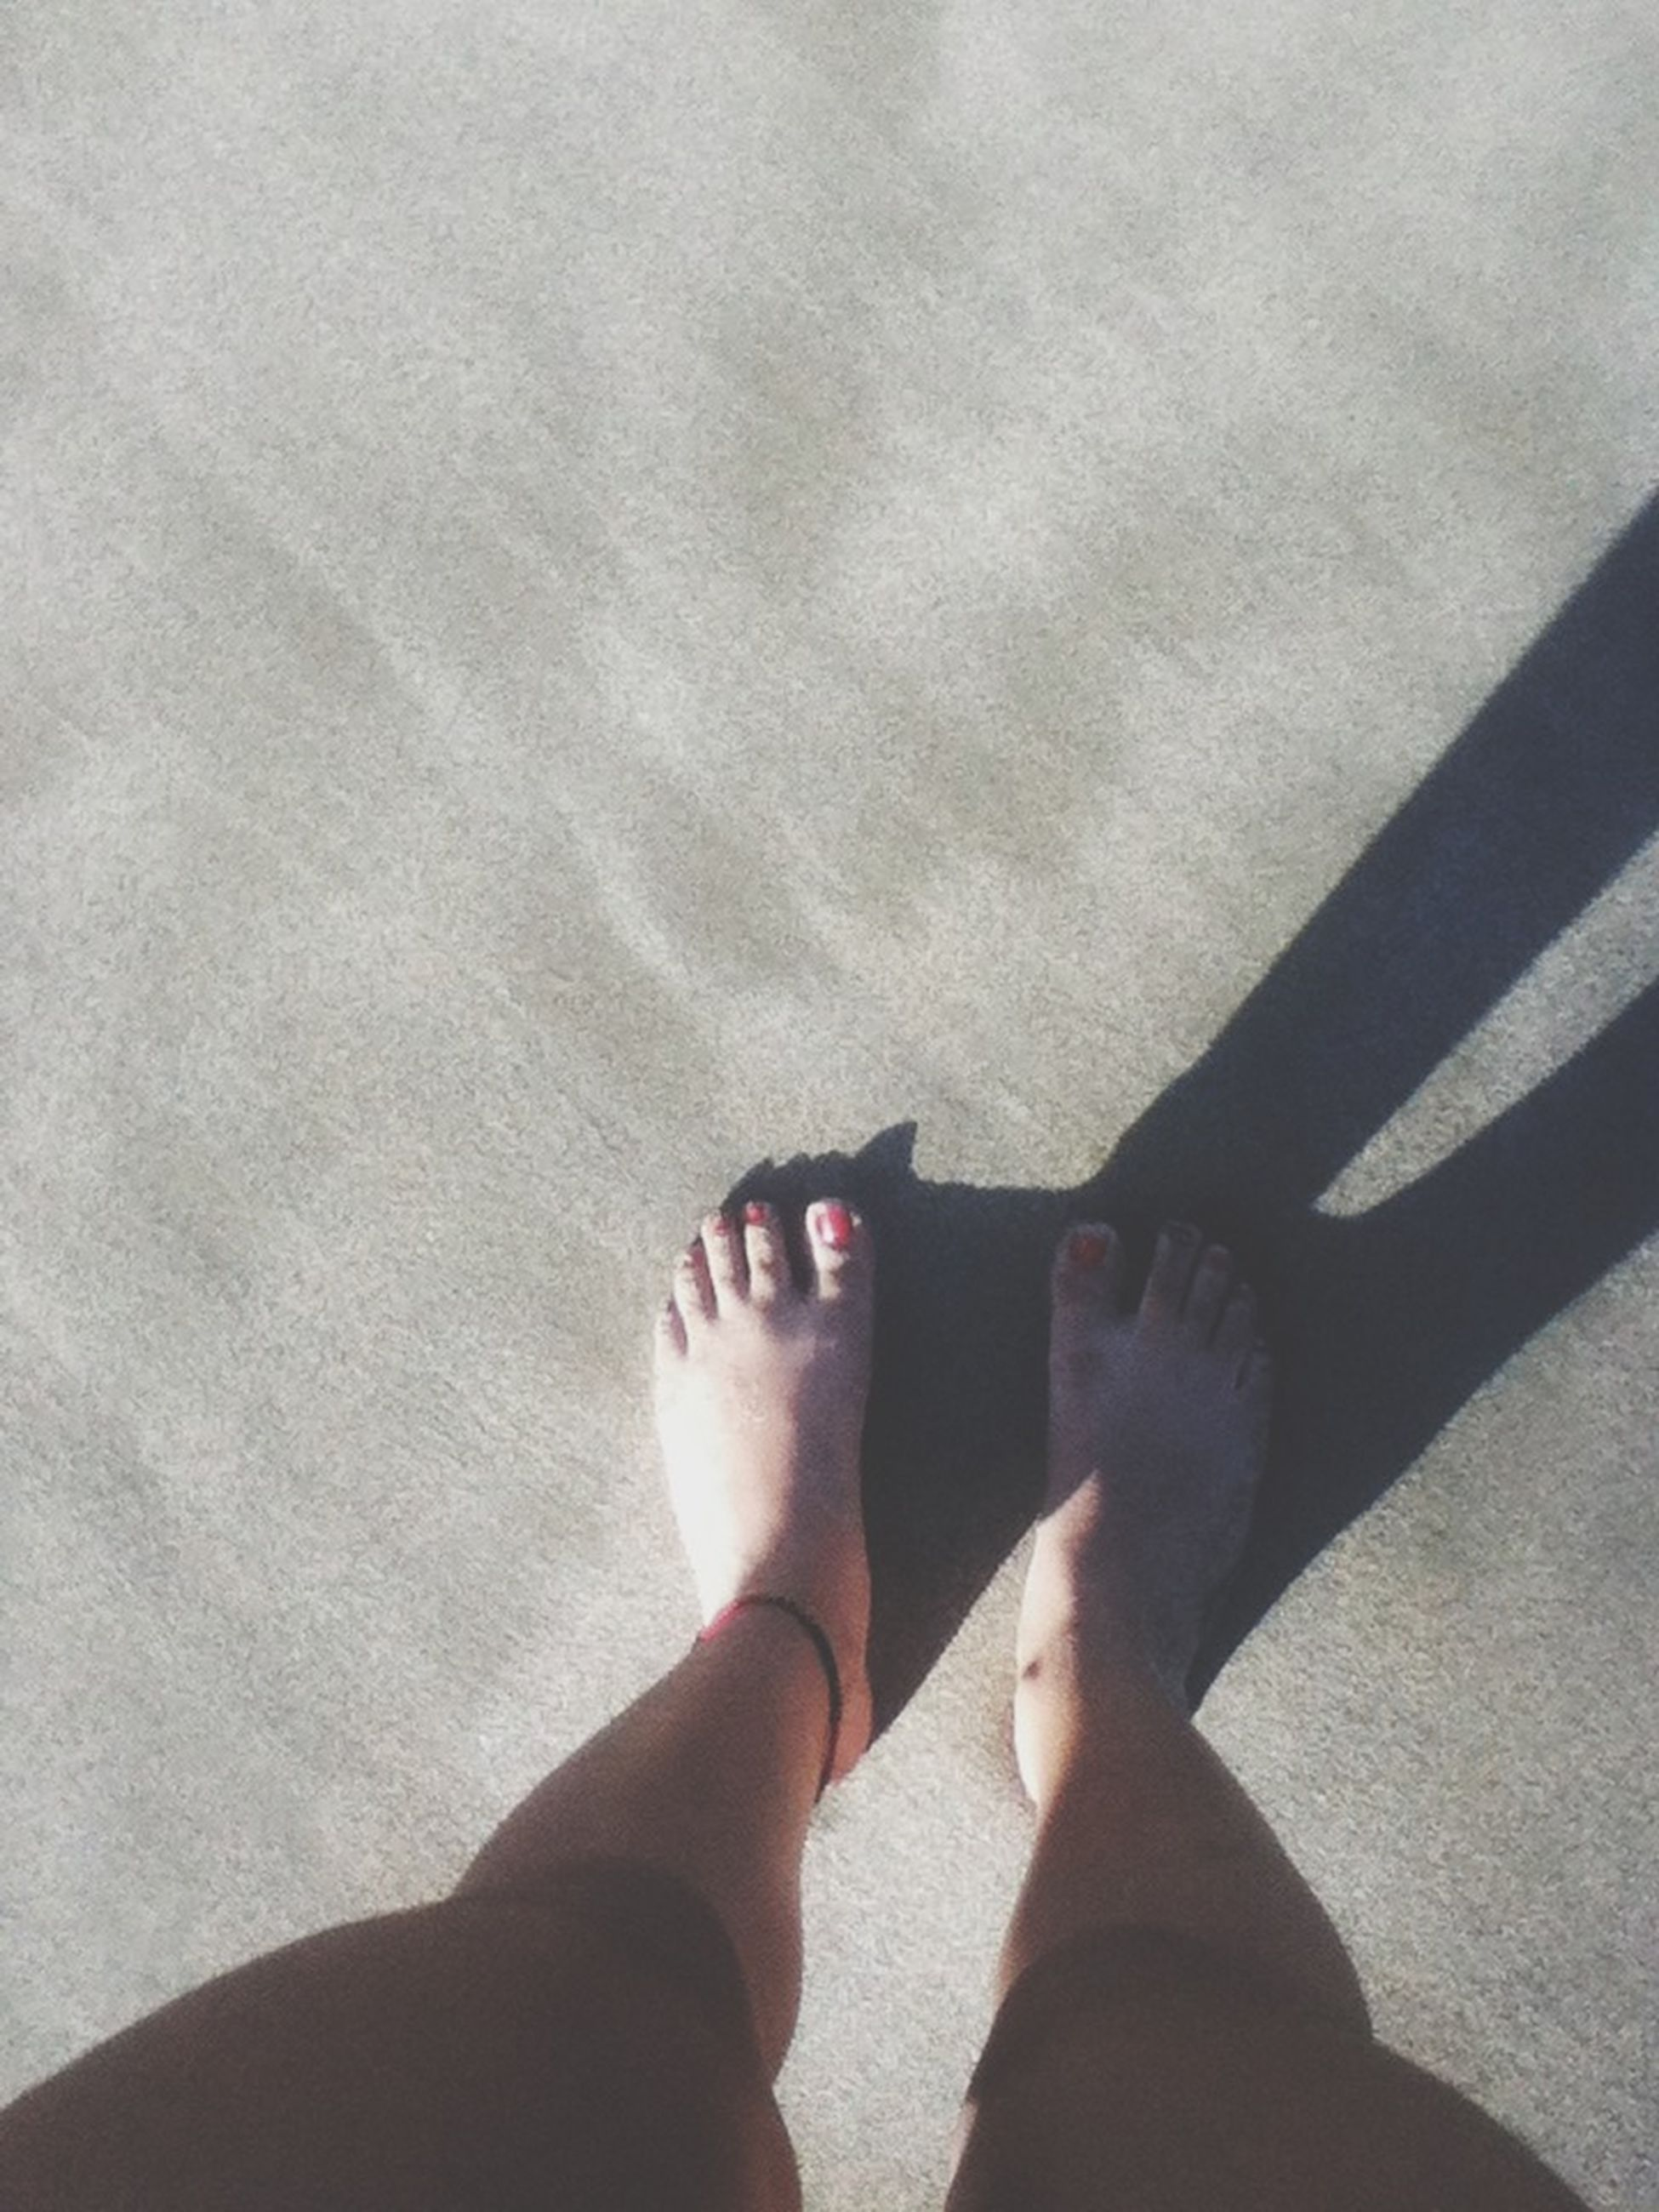 lifestyles, leisure activity, low section, person, men, part of, sunlight, standing, holding, human foot, personal perspective, barefoot, high angle view, shadow